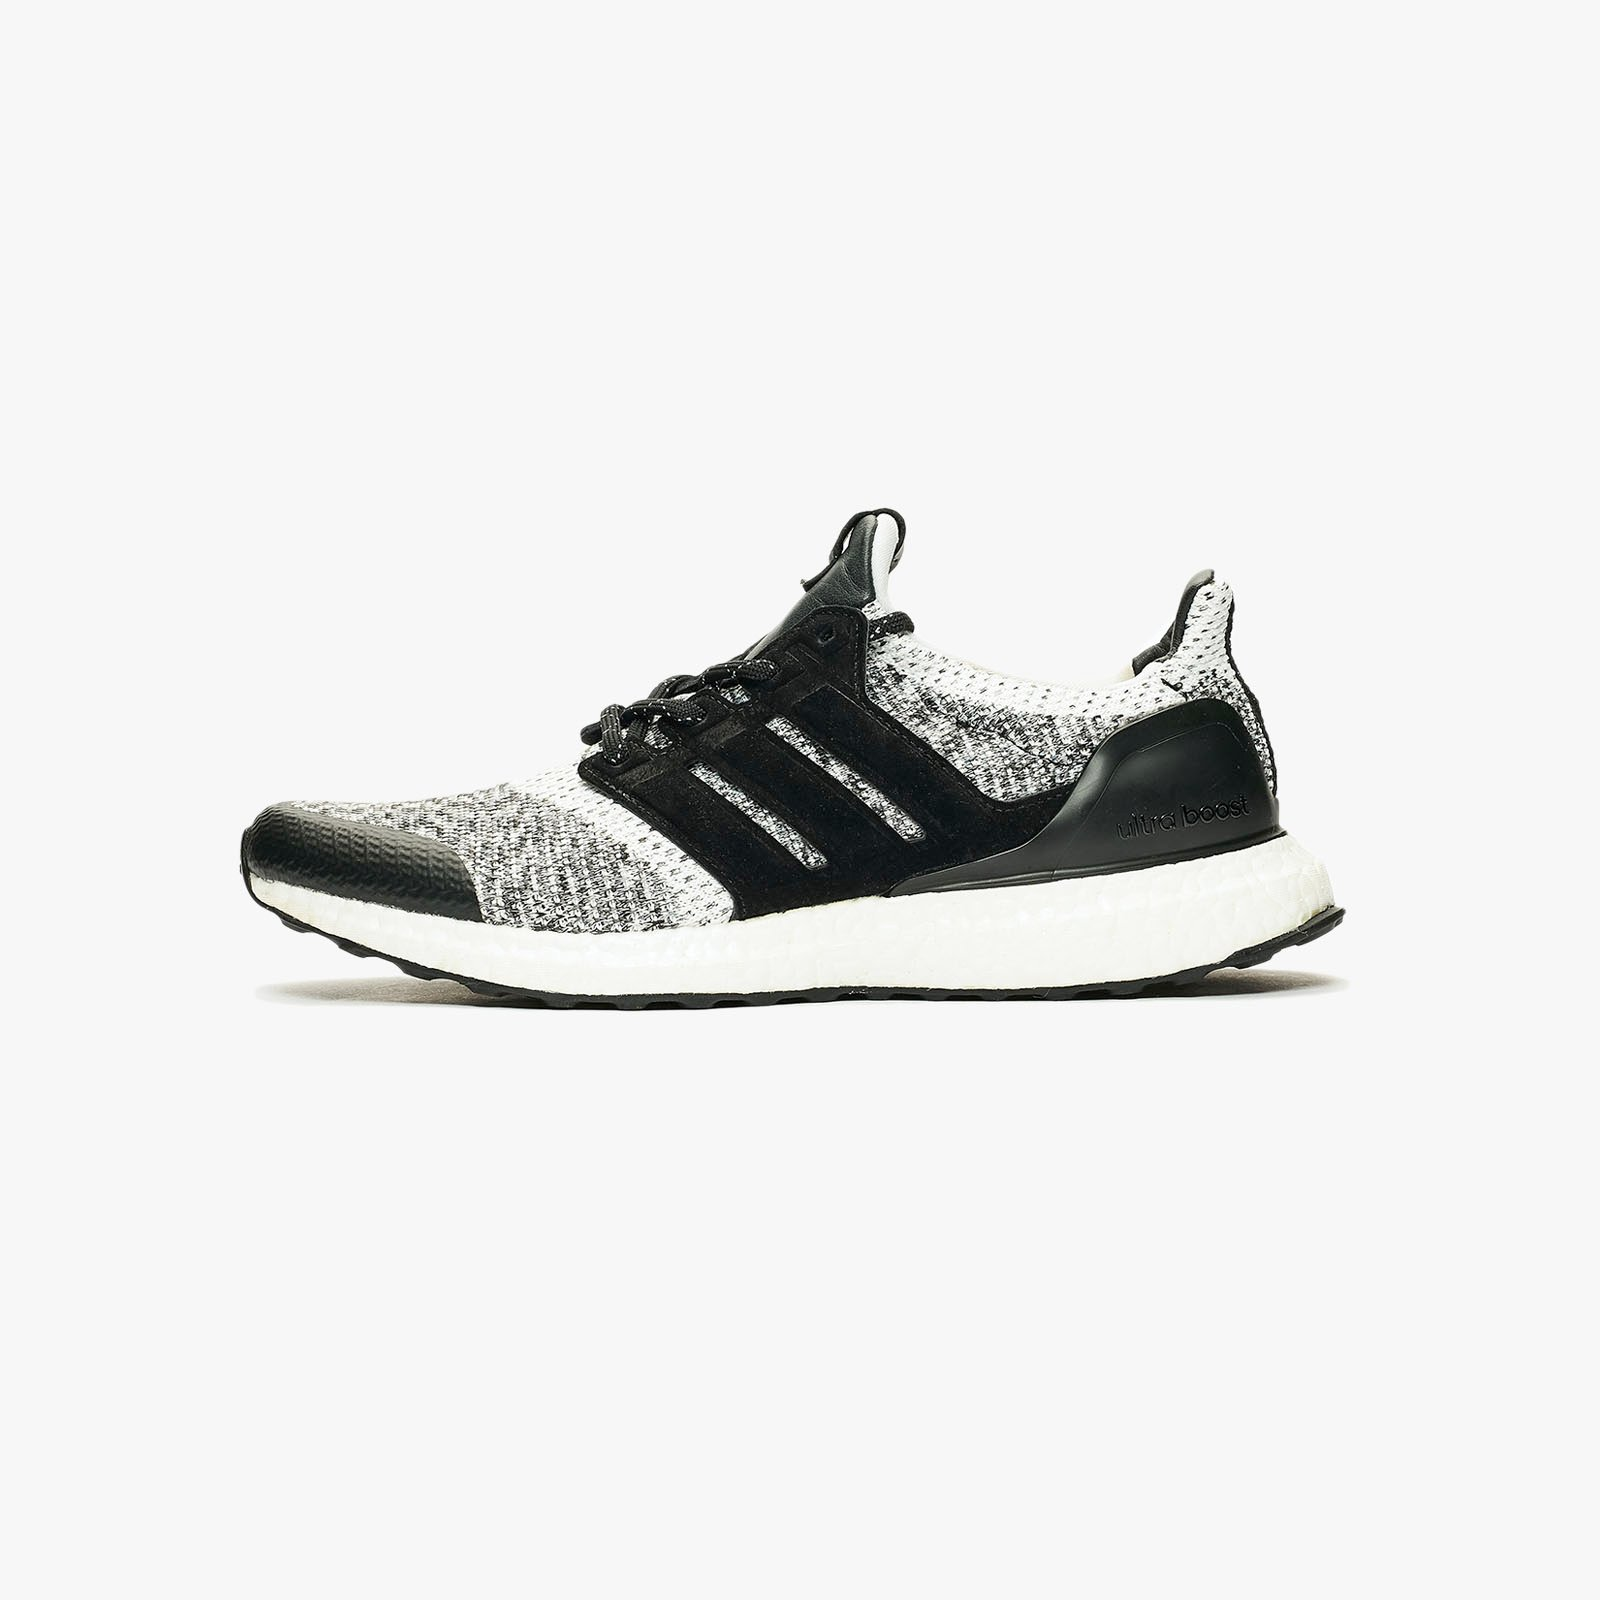 finest selection 7e917 55522 adidas Consortium SNS x Social Status UltraBOOST